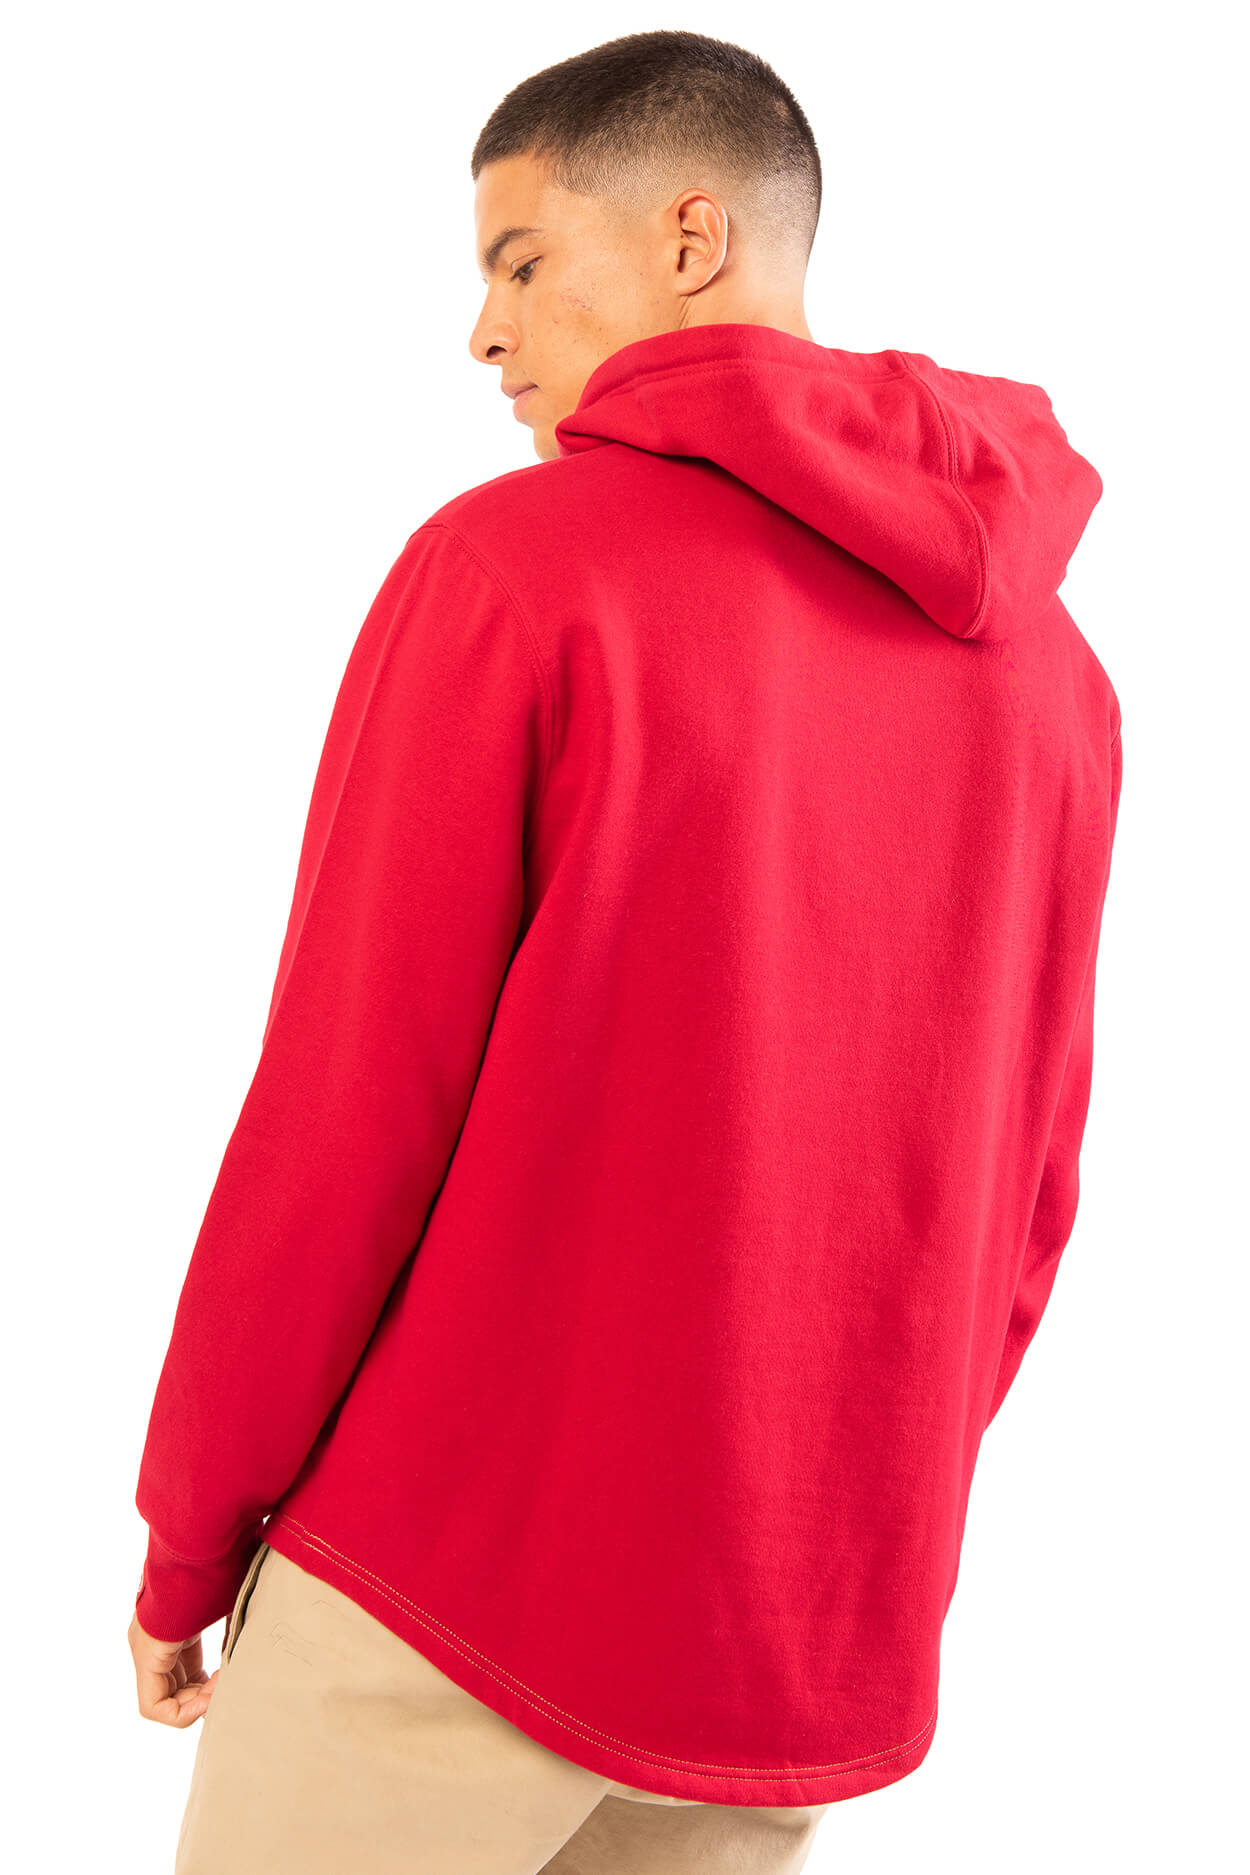 NFL San Francisco 49ers Men's Embroidered Hoodie|San Francisco 49ers